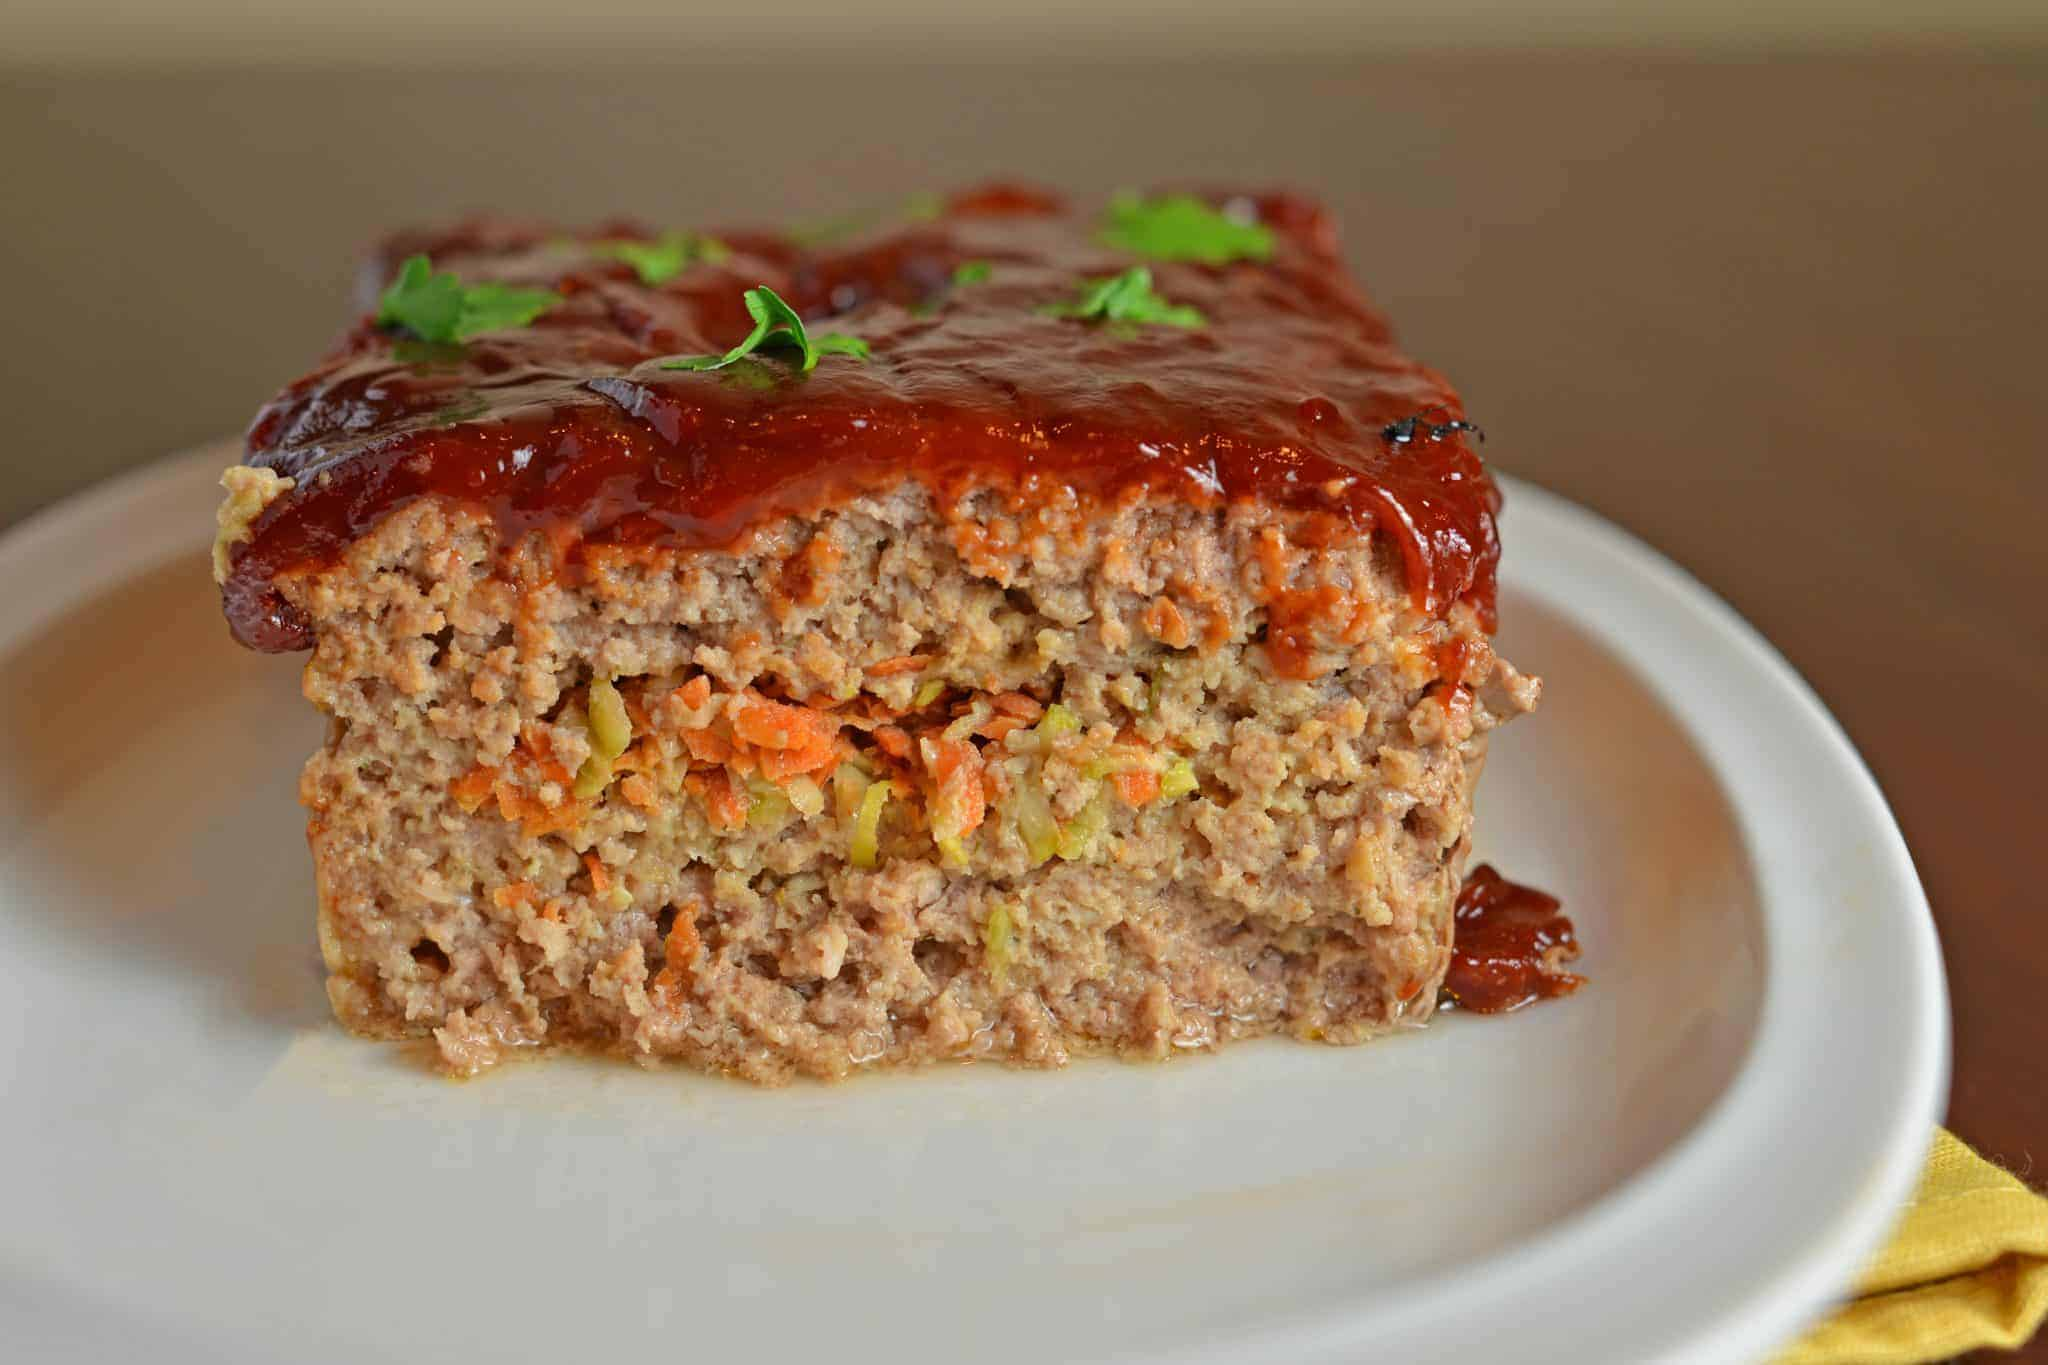 Stuffed meatloaf on a white plate